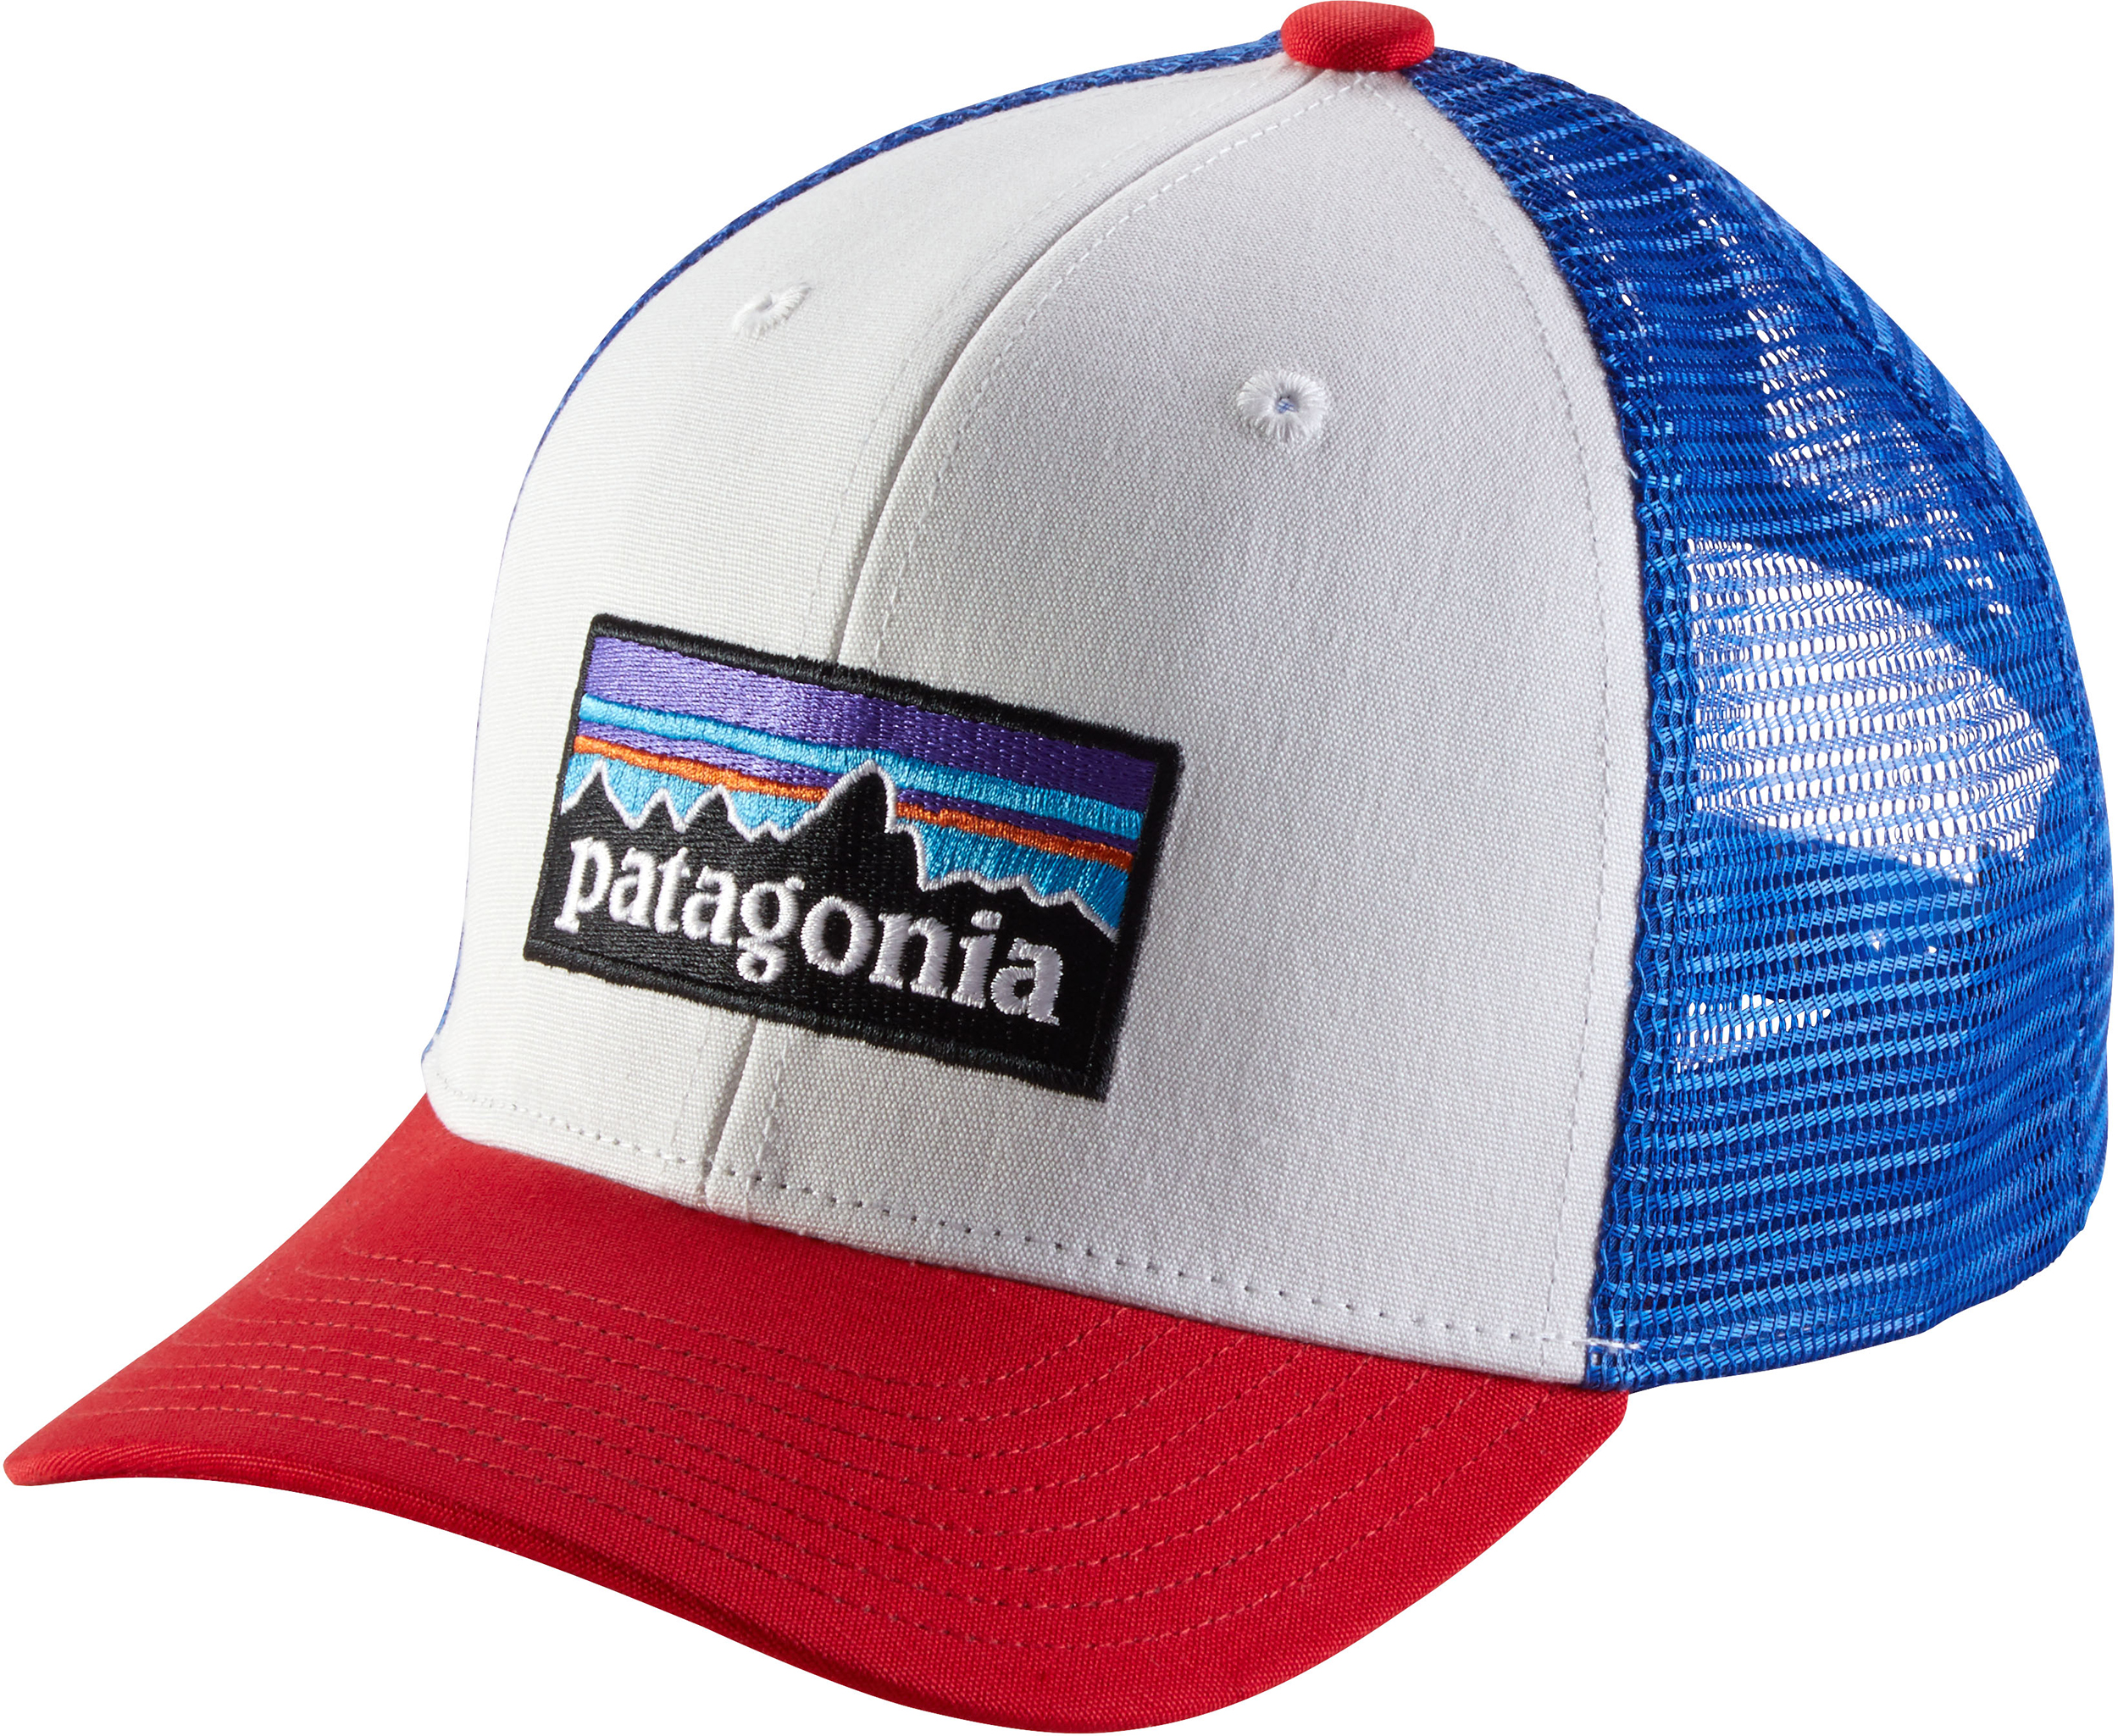 77af7adb880 Patagonia Trucker Hat - Children to Youths